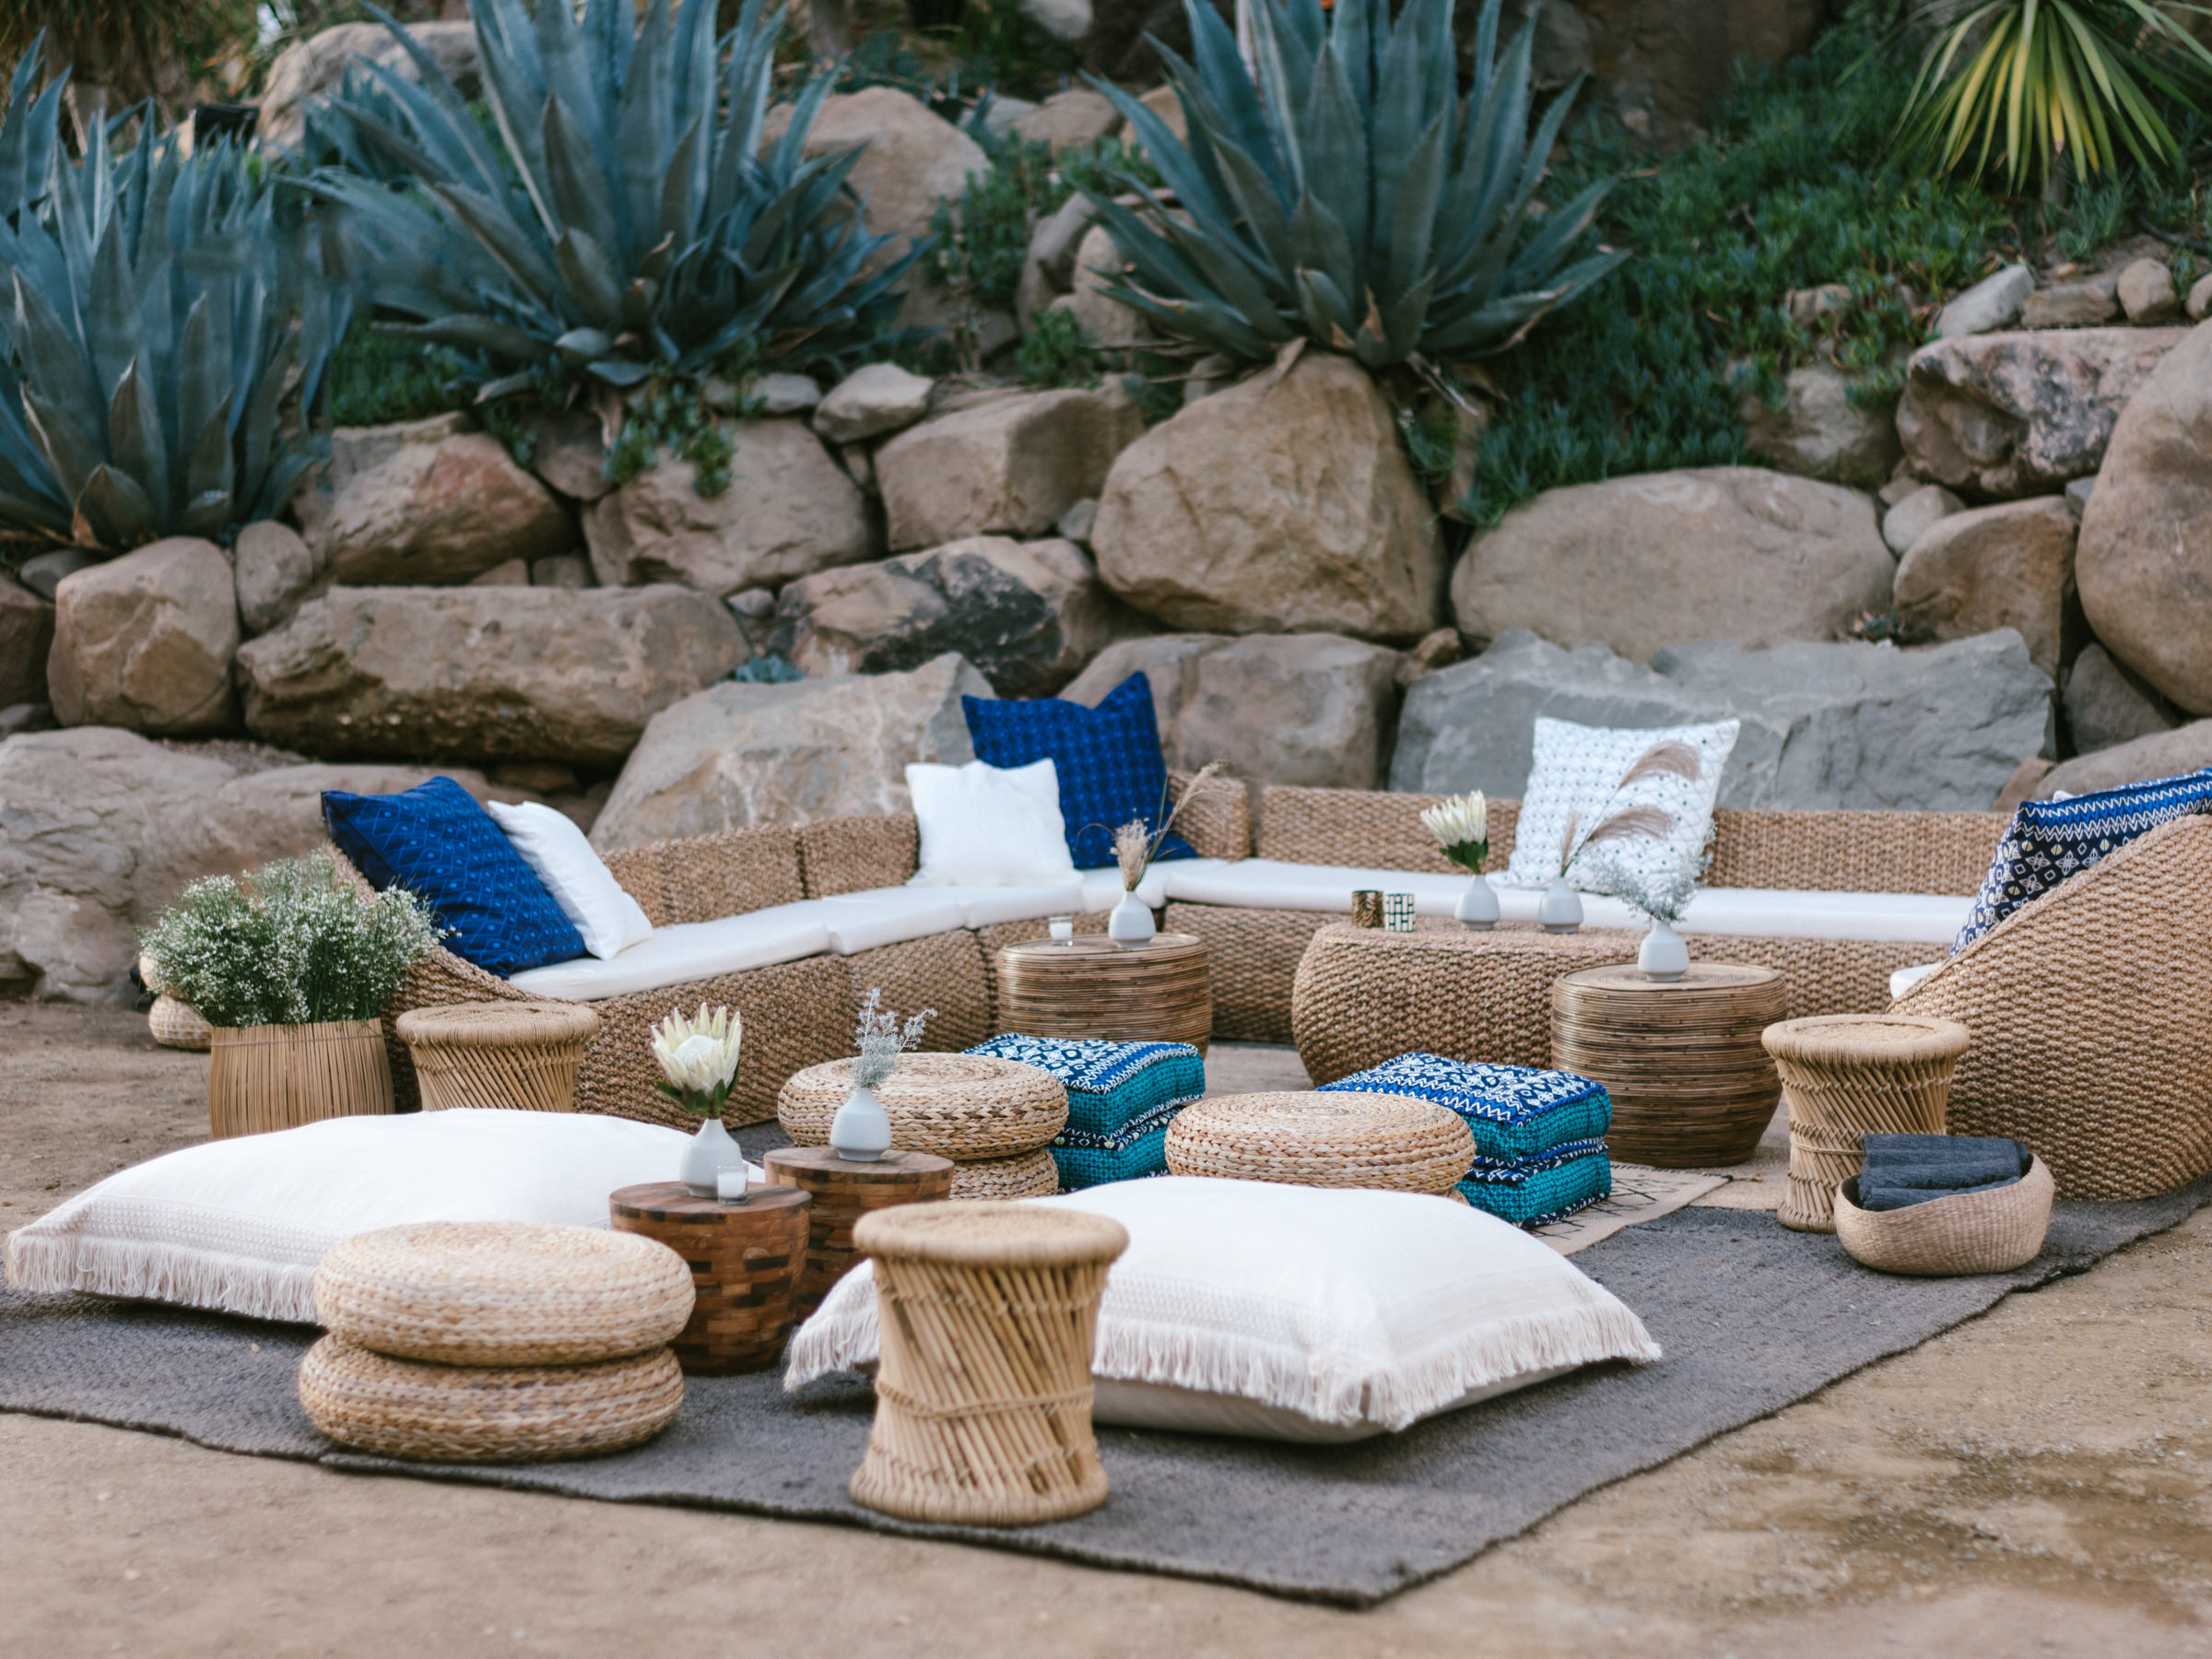 reception wicker seating outdoor tropical setting- photo by Amy and Stuart Photography